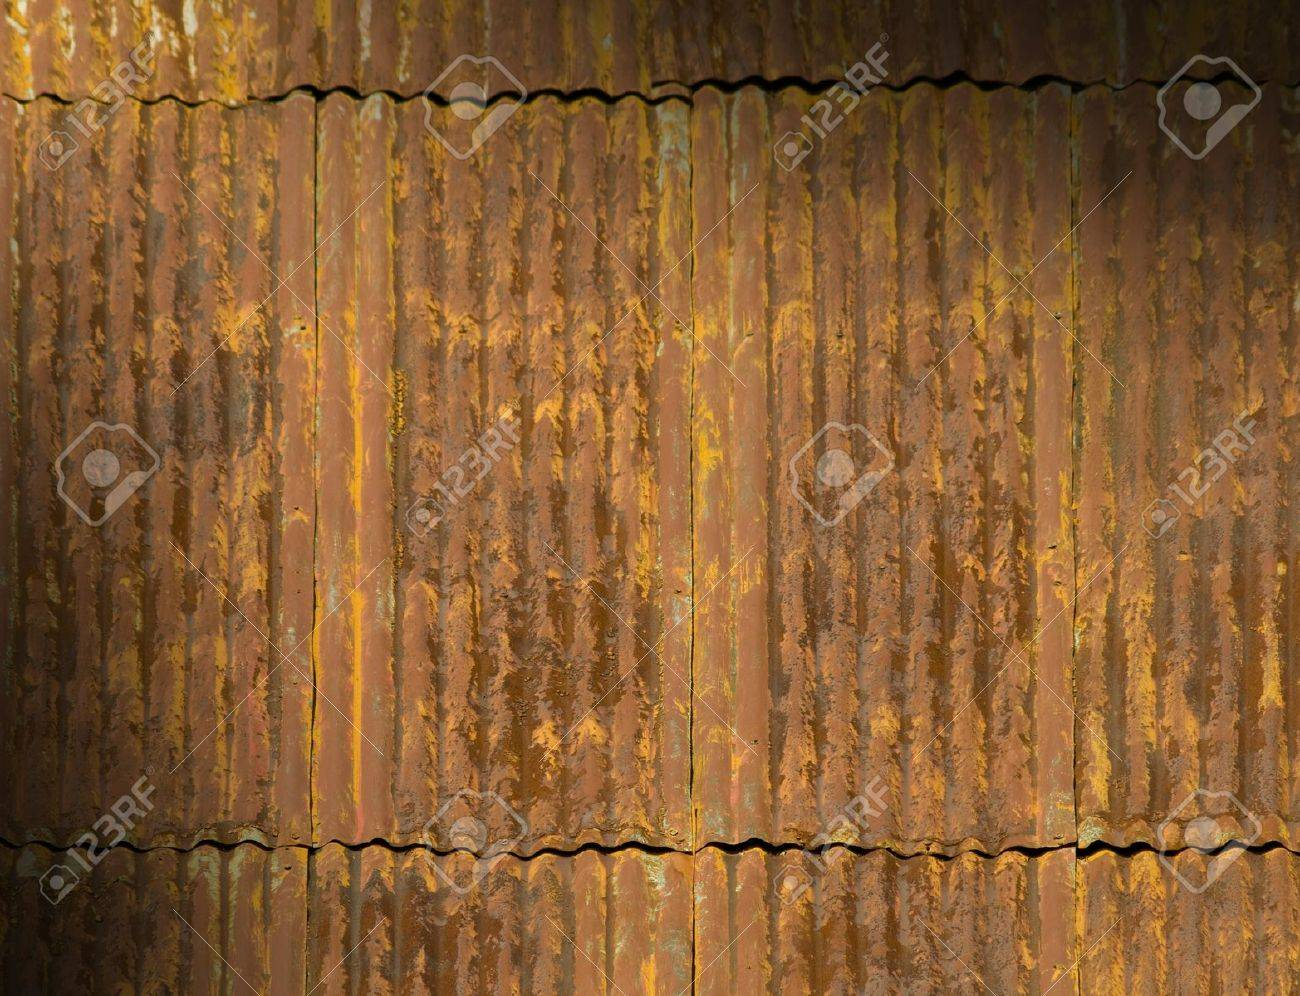 Corrugated Metal Panels For Sale - Corroded and rusty corrugated metal roof panels lit diagonally stock photo 10311154